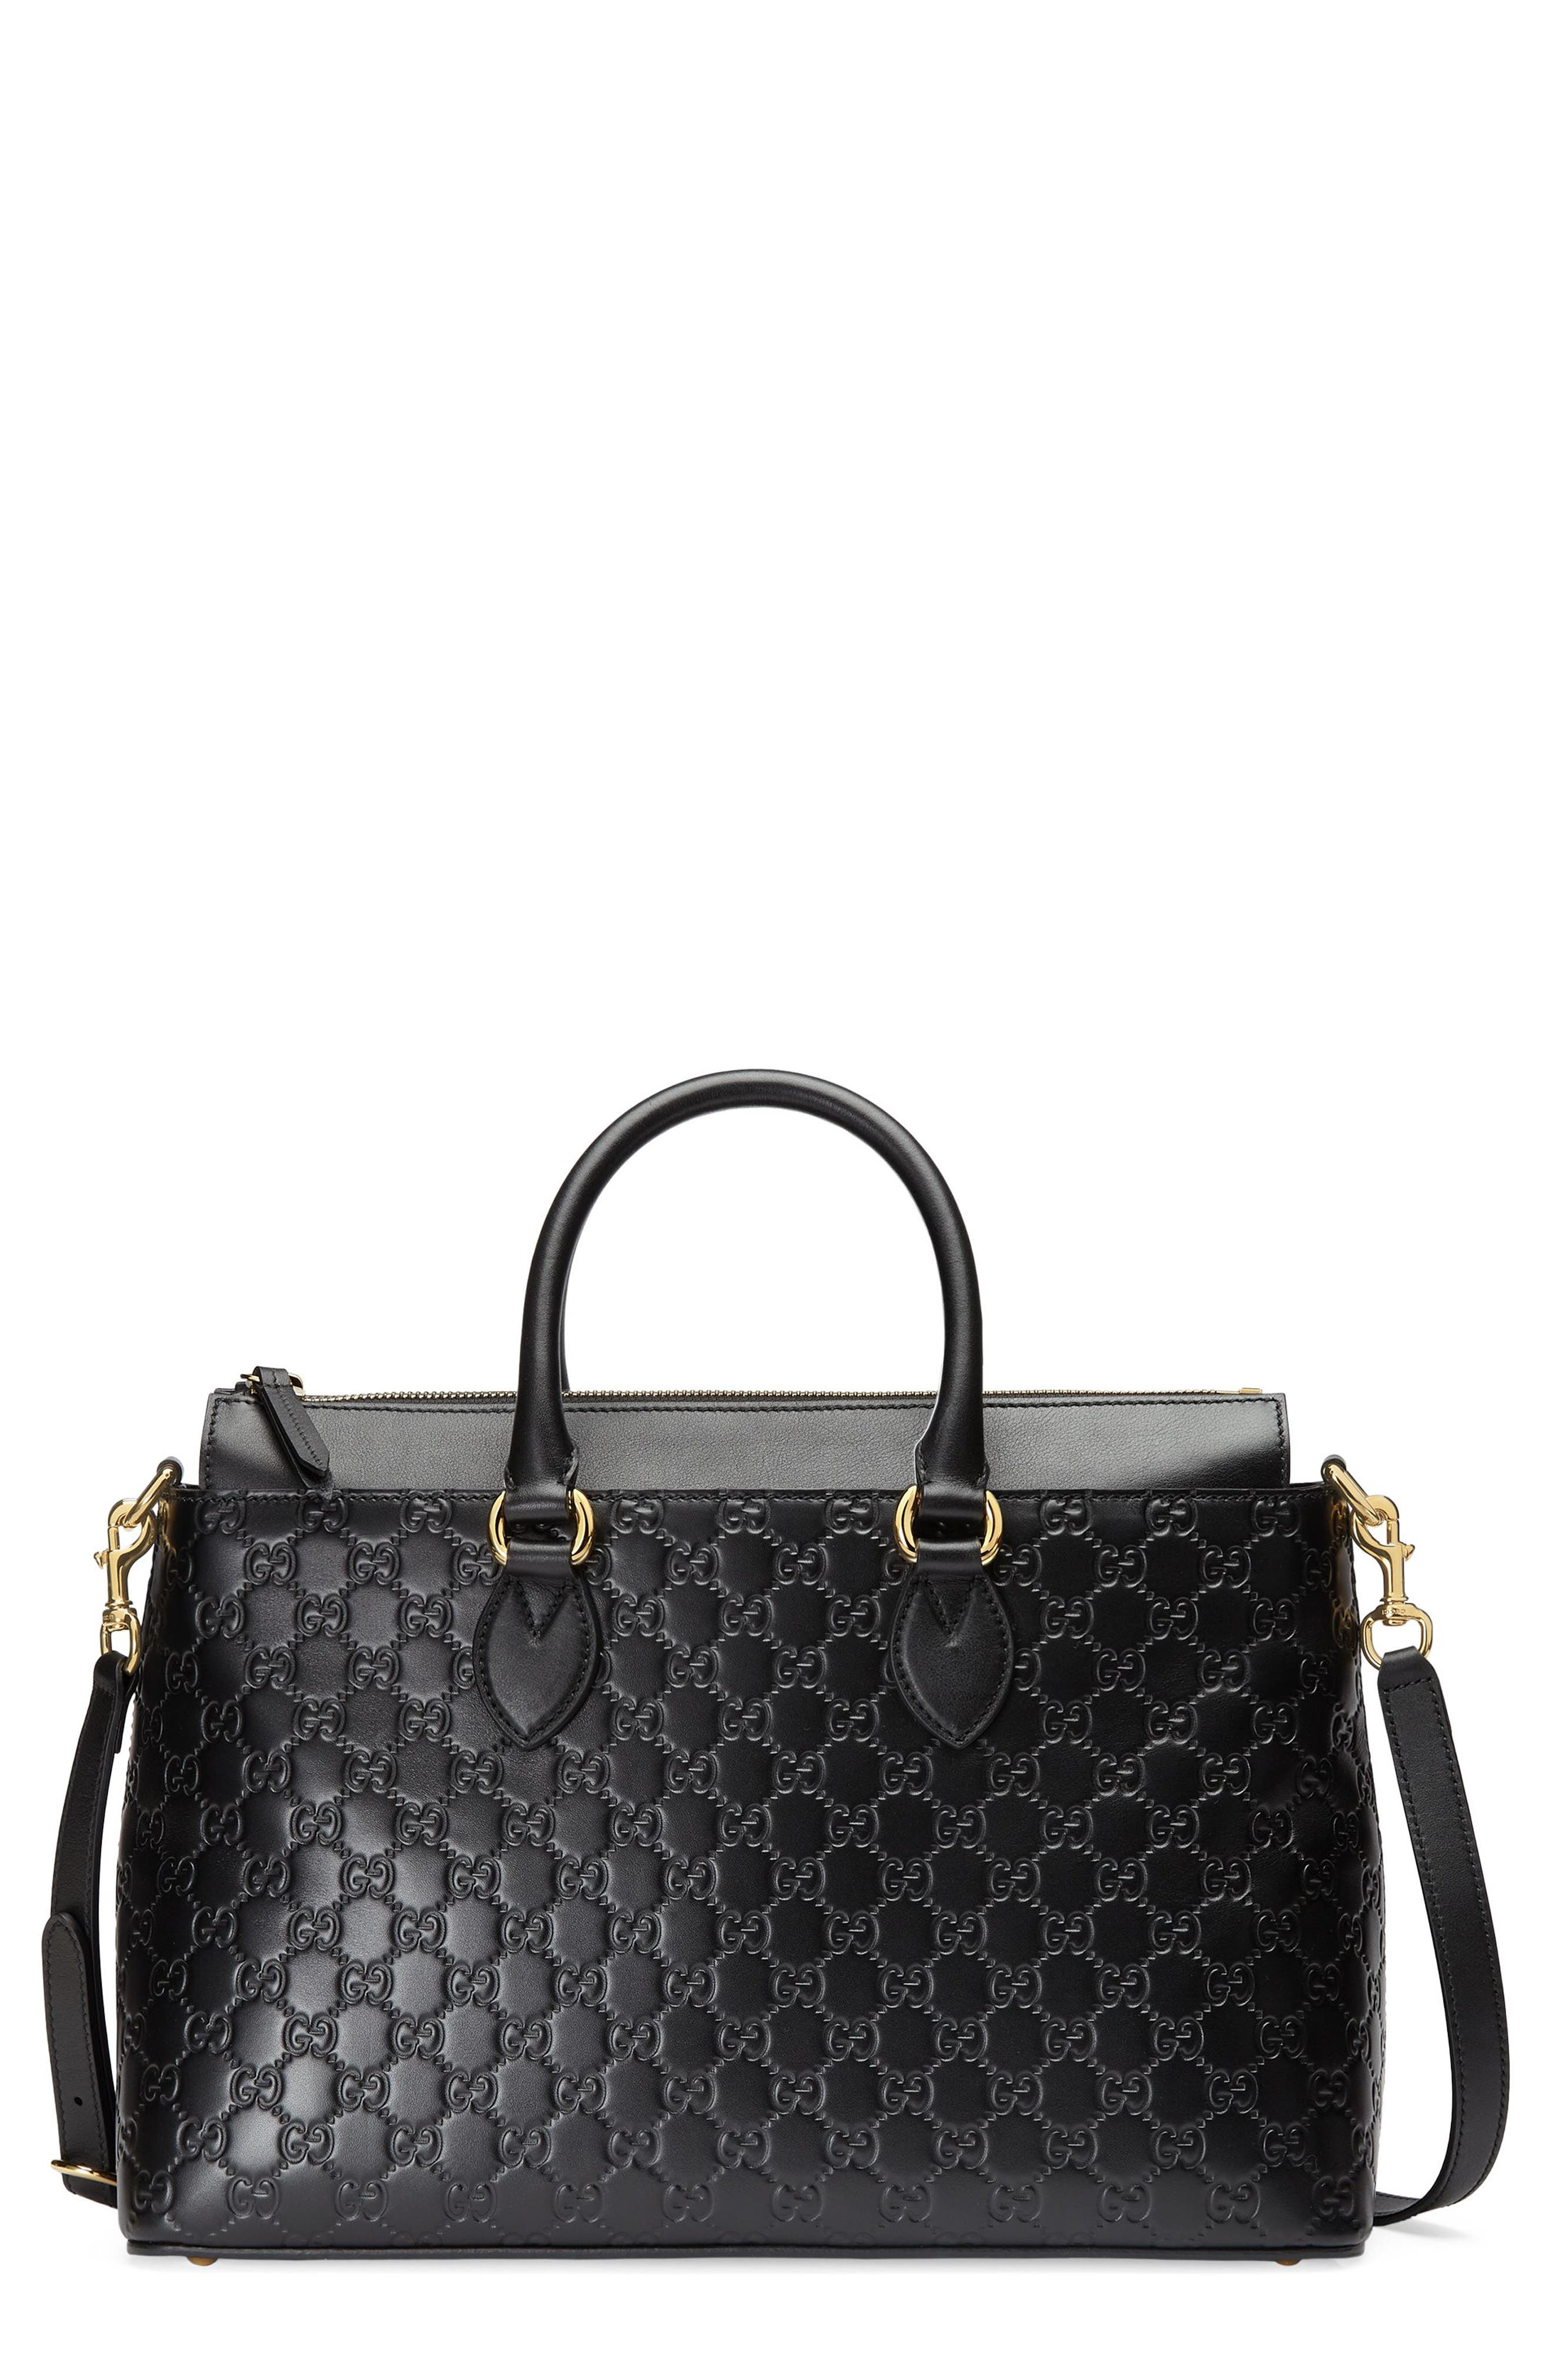 Alternate Image 1 Selected - Gucci Medium Top Handle Signature Leather Tote